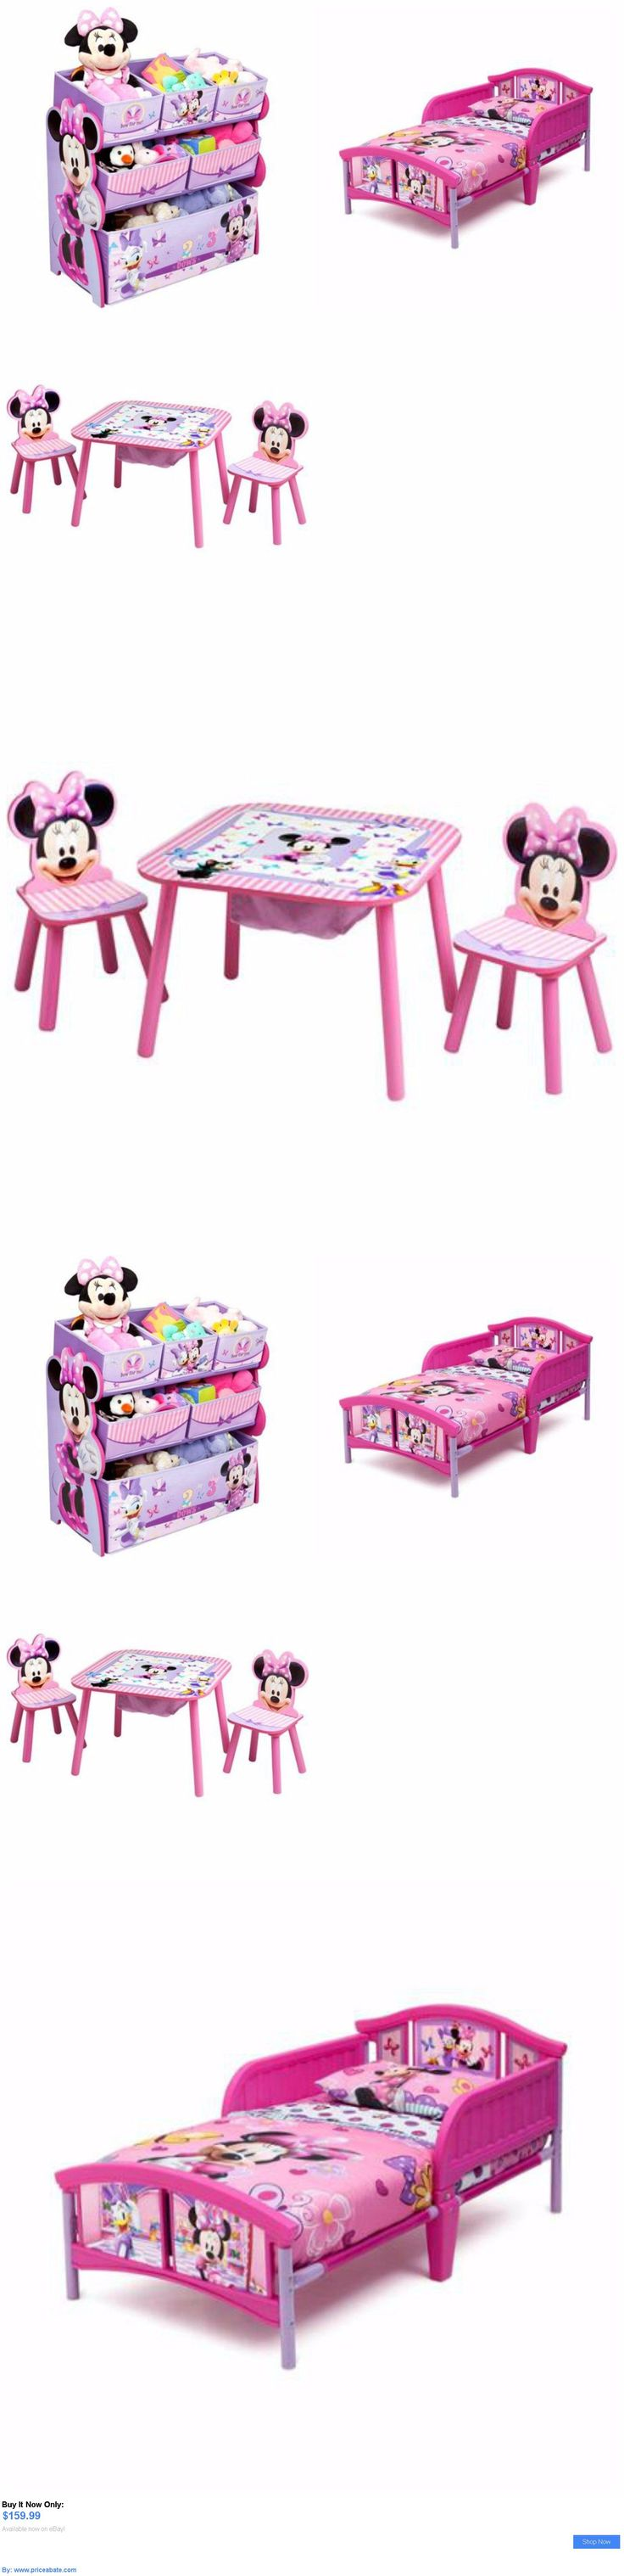 Kids at Home: Minnie Mouse Toddler Bedroom Furniture Set Disney Bed Toy Bin Pink Girls New BUY IT NOW ONLY: $159.99 #priceabateKidsatHome OR #priceabate